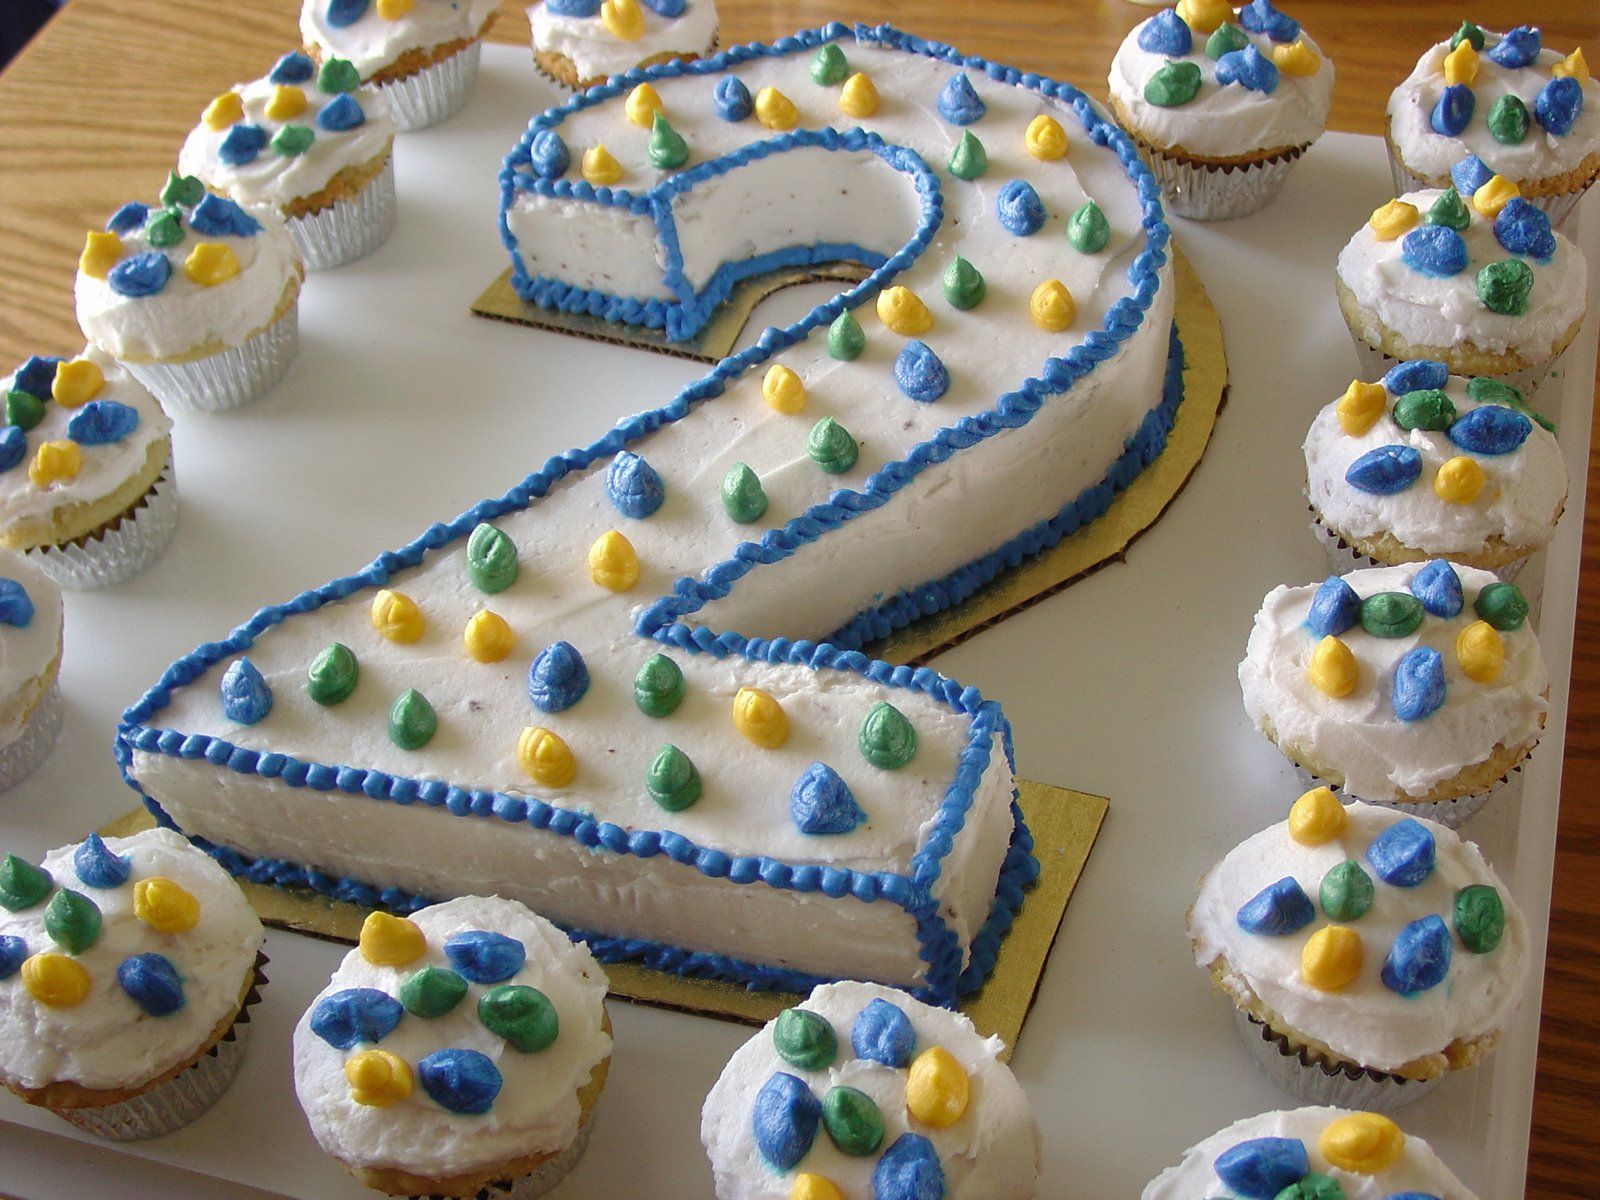 Birthday Cake Designs For 4 Year Old Boy : birthday cake for boys BIRTHDAY CAKE 2 year old ...